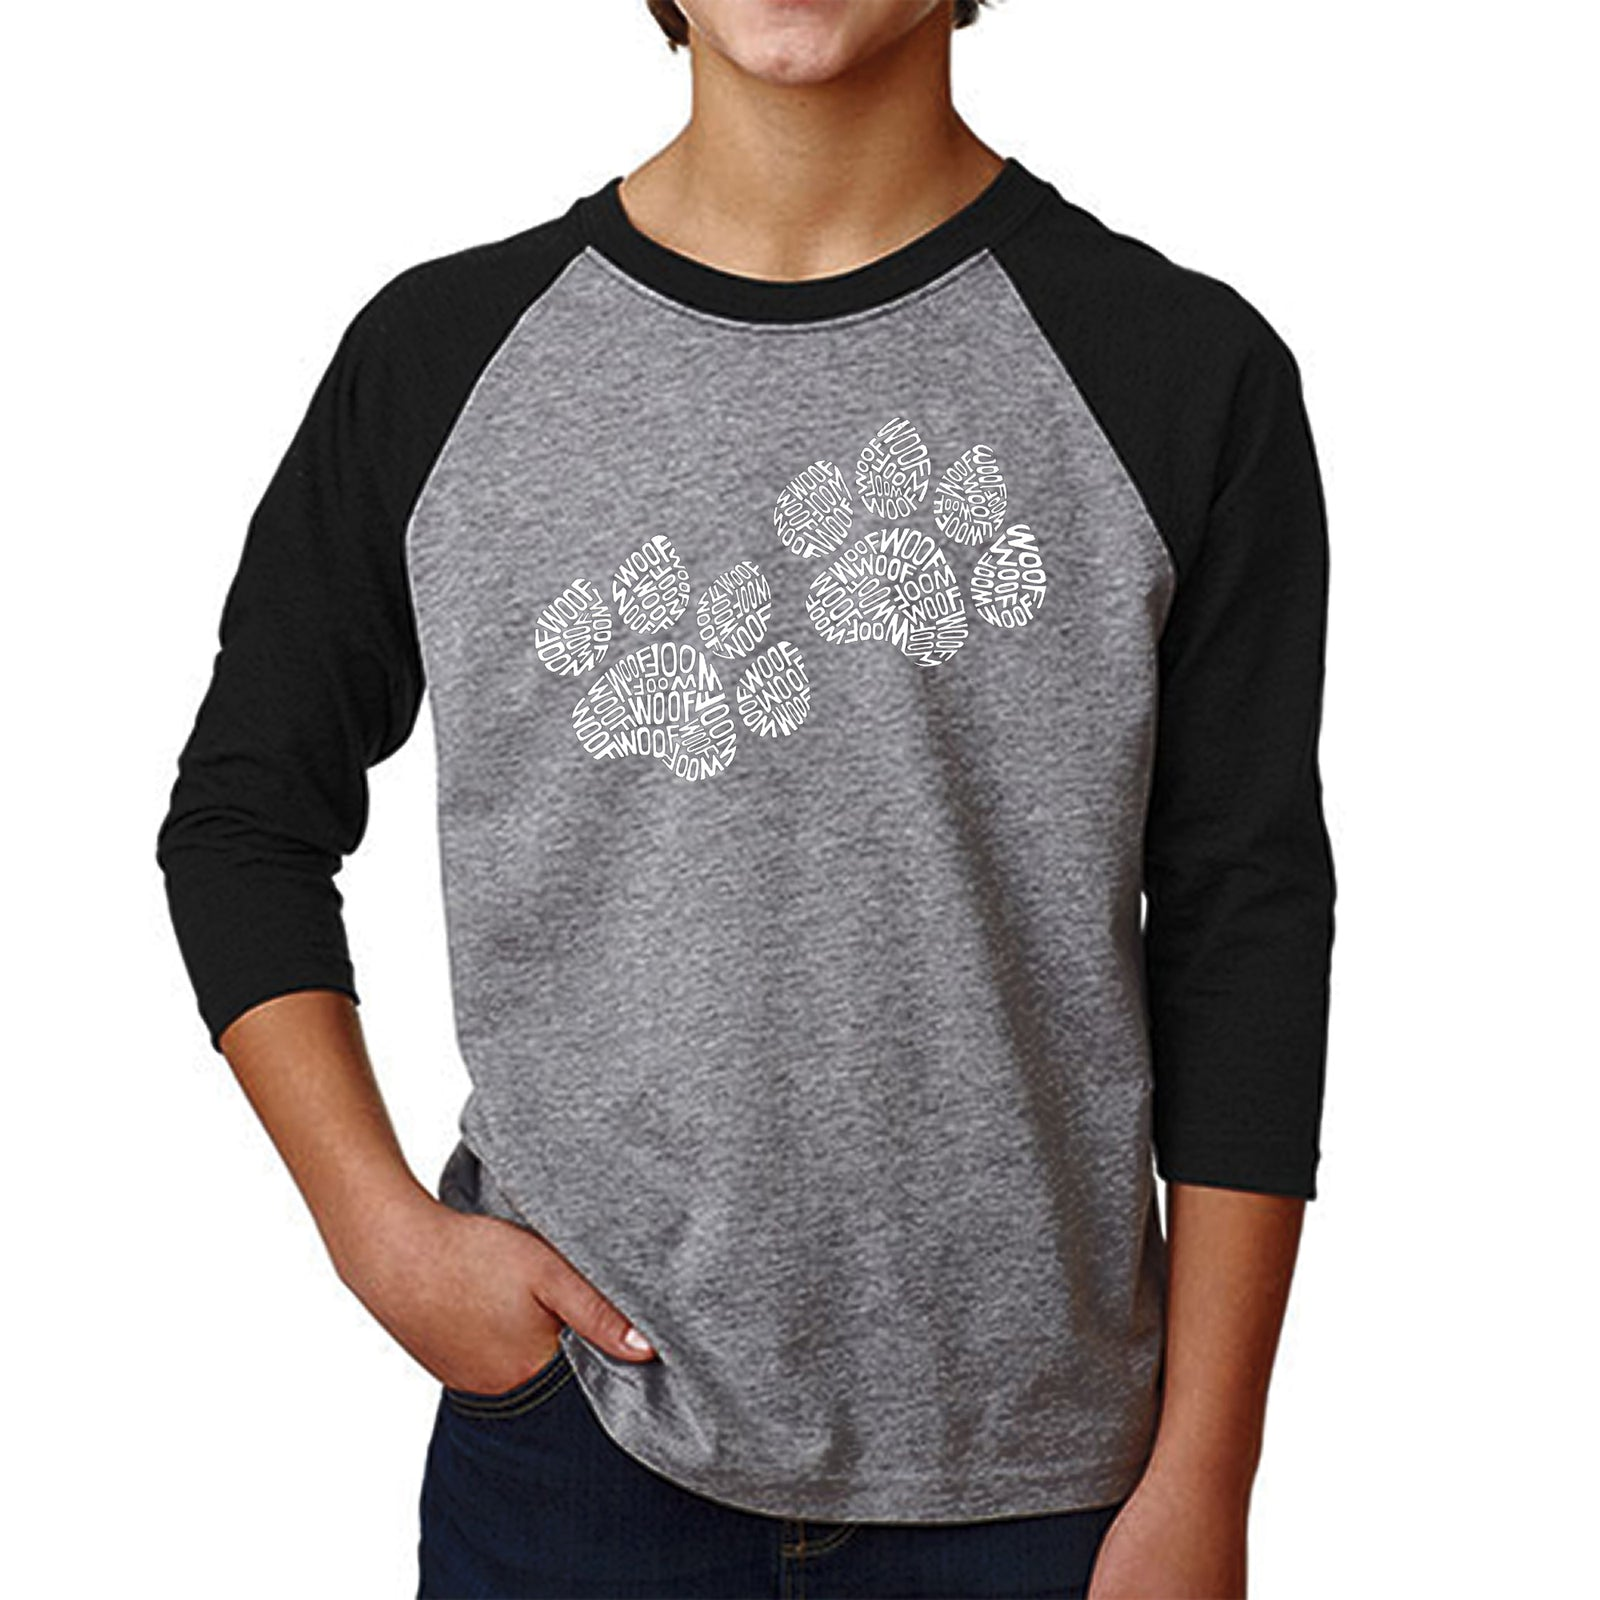 Boy's Raglan Baseball Word Art T-shirt - Woof Paw Prints